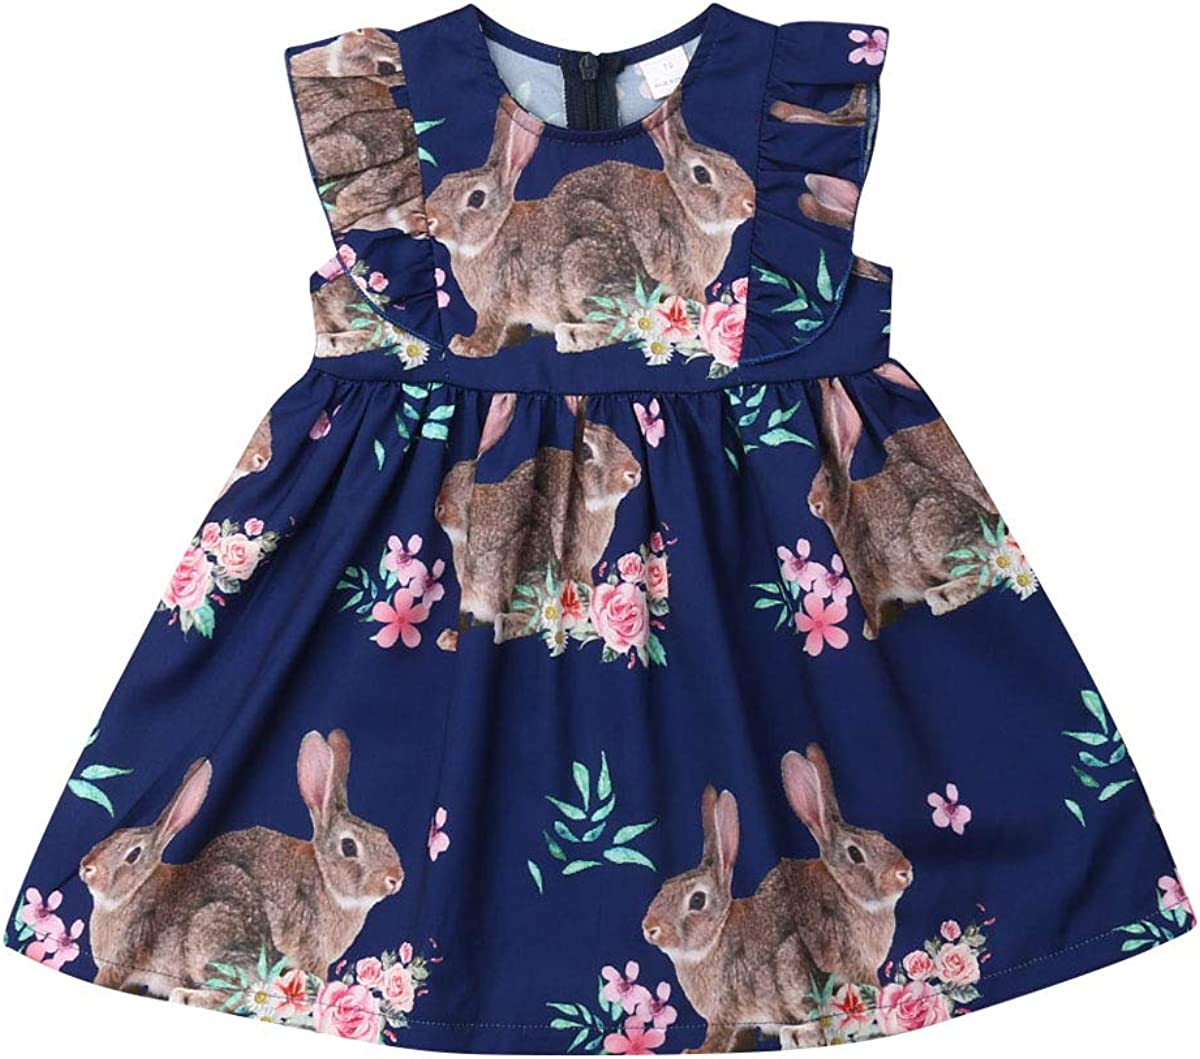 Qpap Toddler Baby Girls Easter Bunny Dress Tutu Skirts Princess Dresses Pageant Summer 1st Easter Skirts Clothes